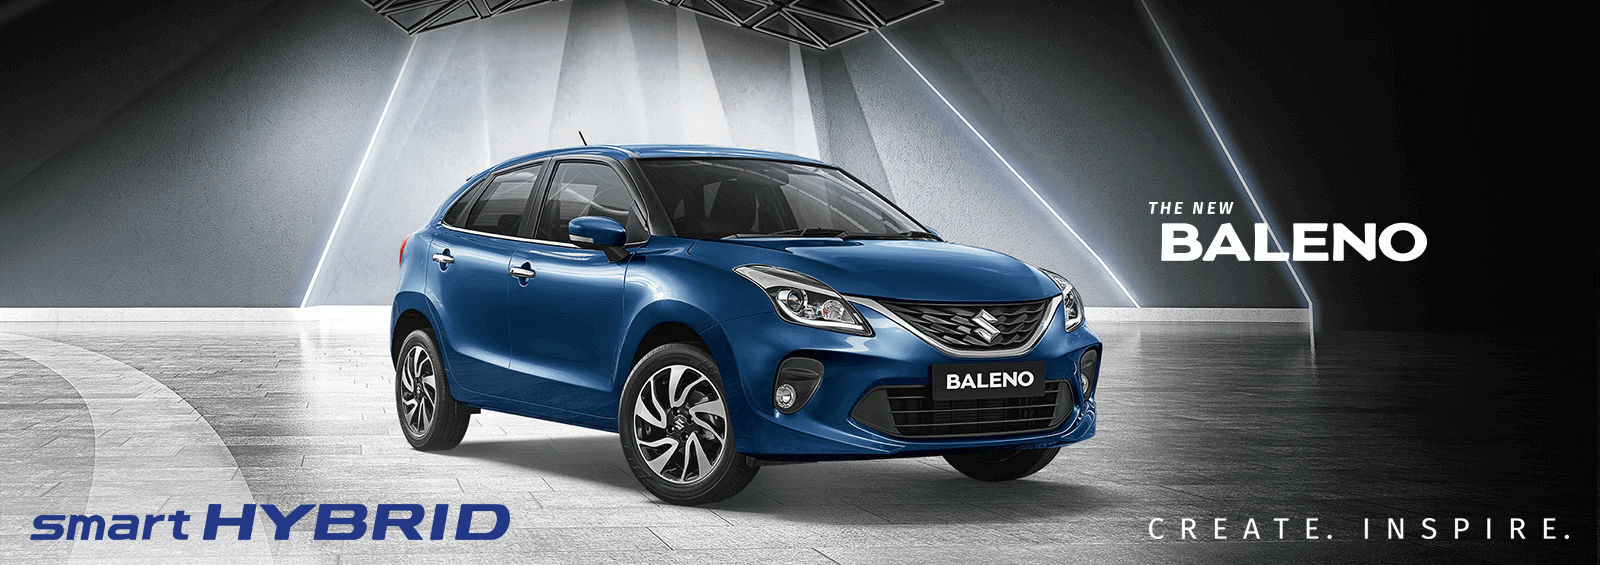 Baleno-Desktop-Banner CLML Pvt Ltd GT Road, Aligarh